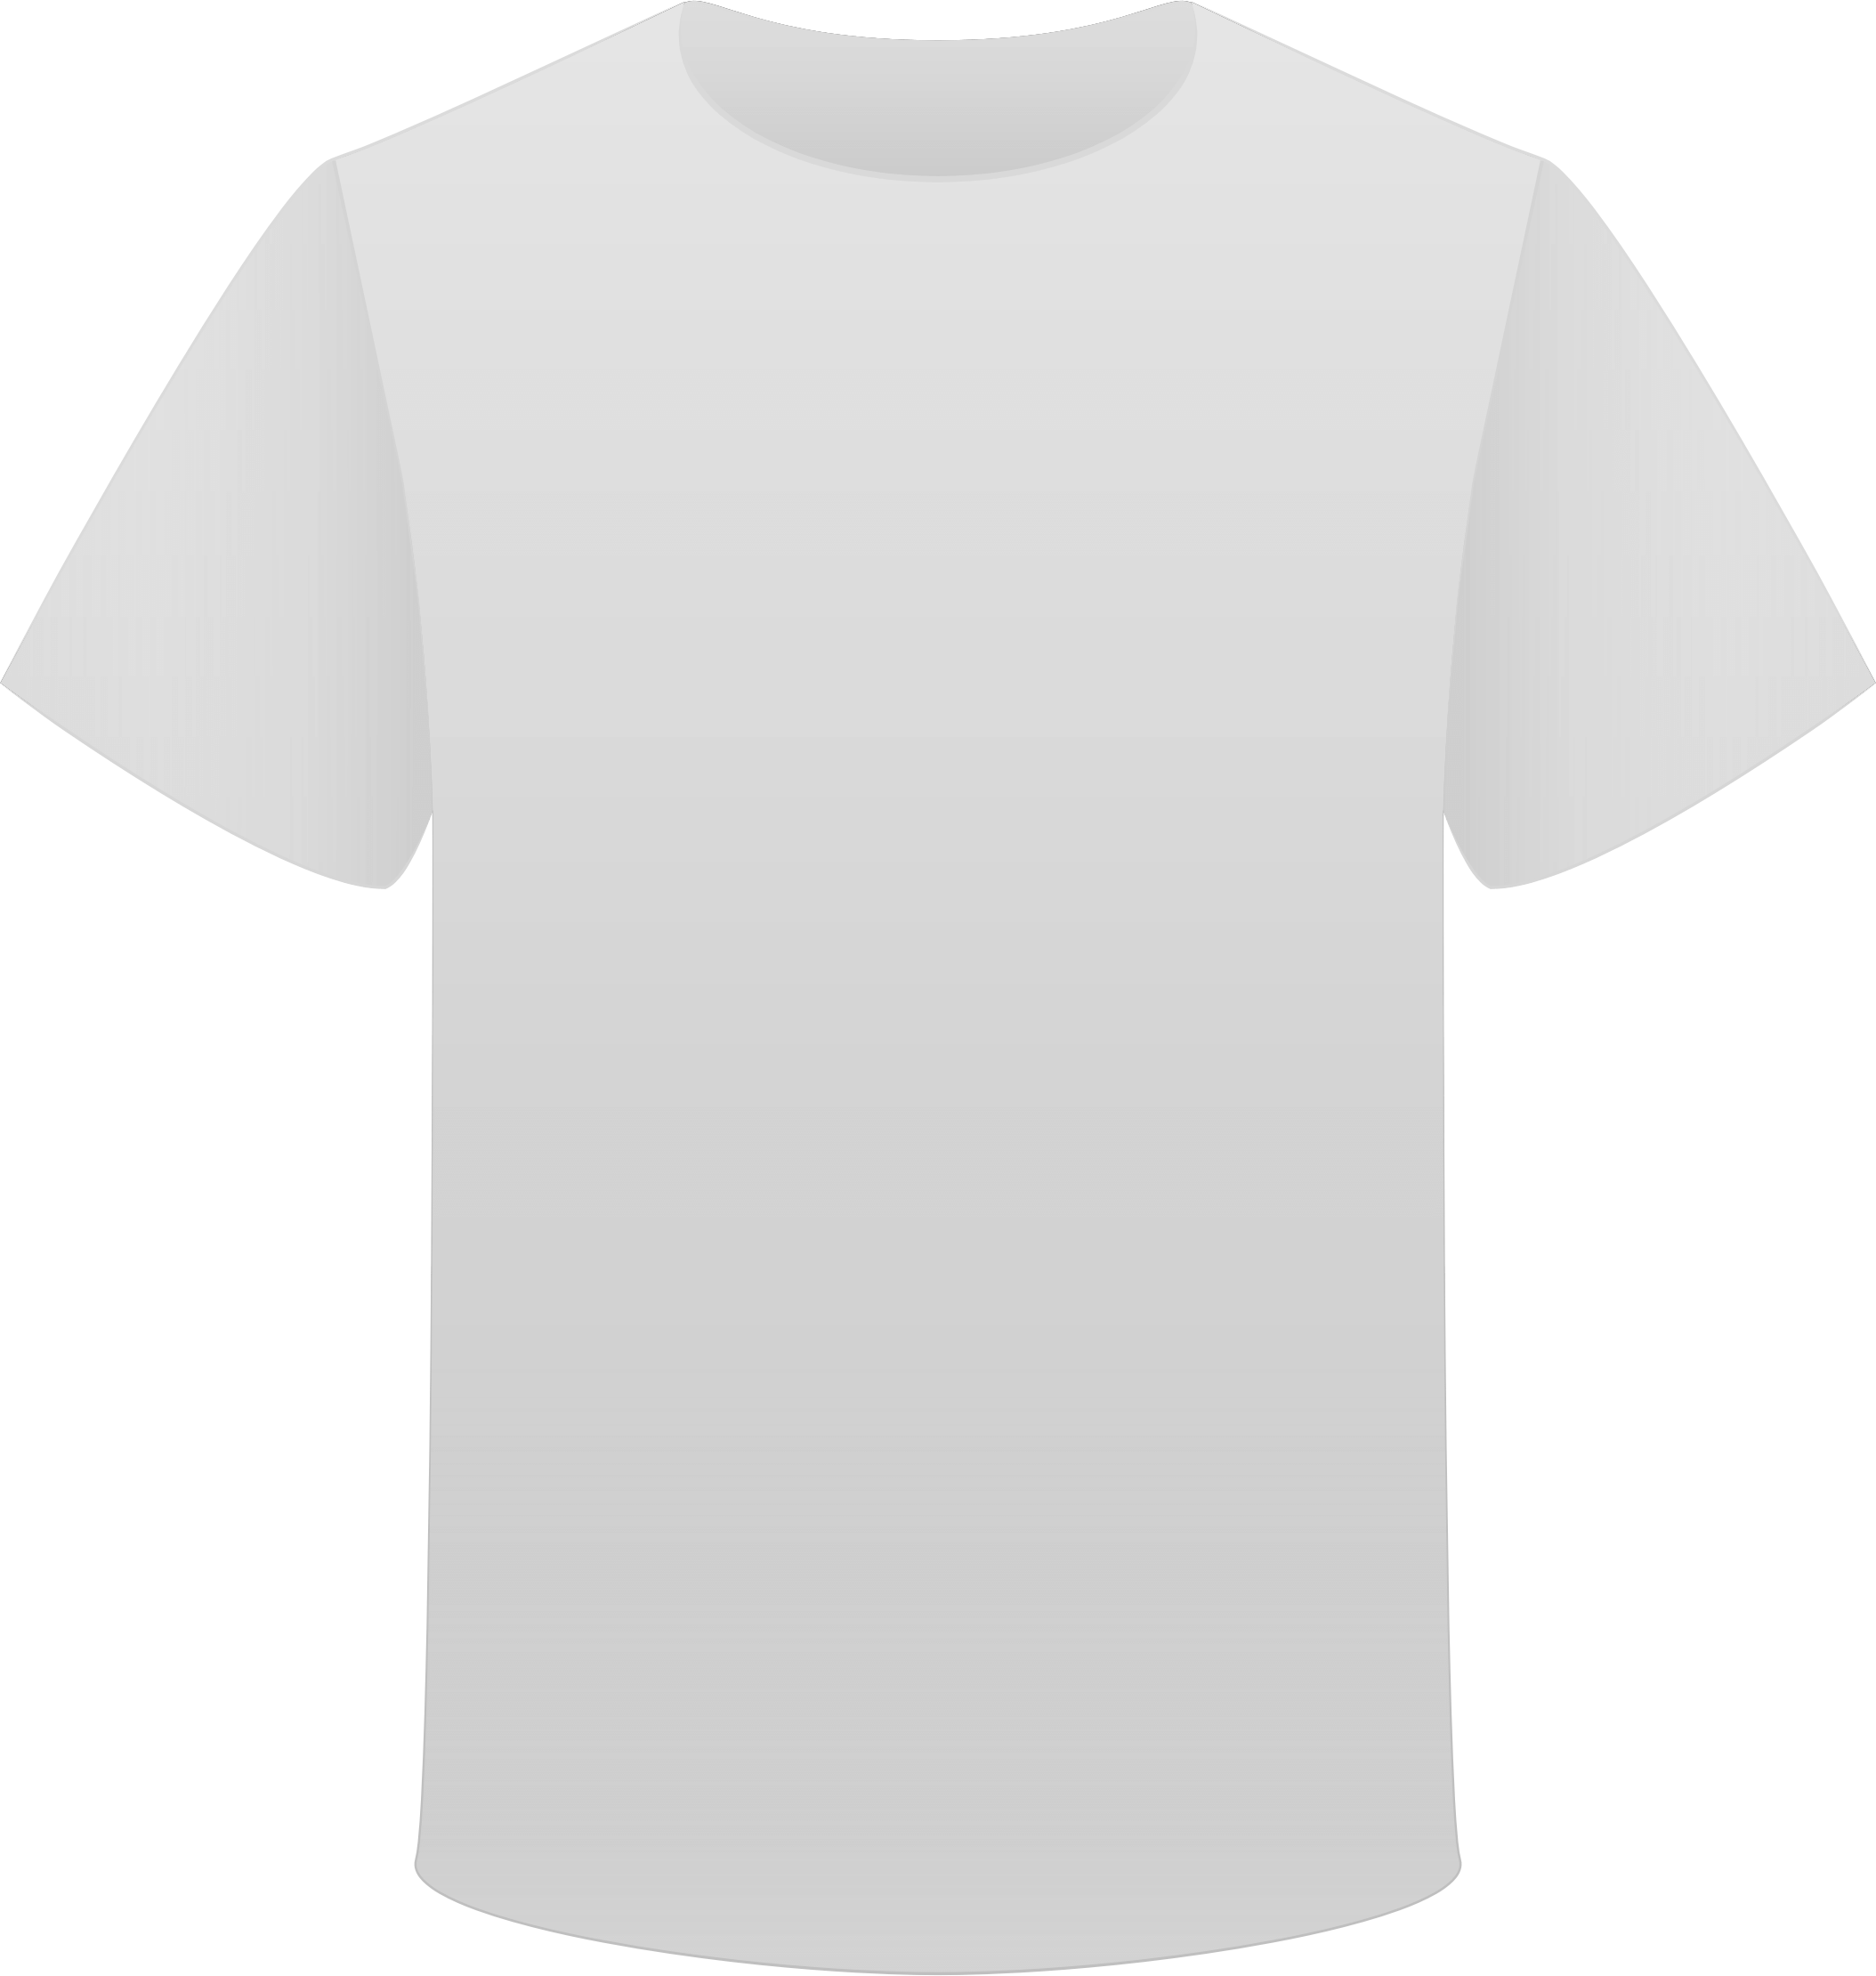 White teeshirt clipart svg stock Tshirt White Clipart transparent PNG - StickPNG svg stock